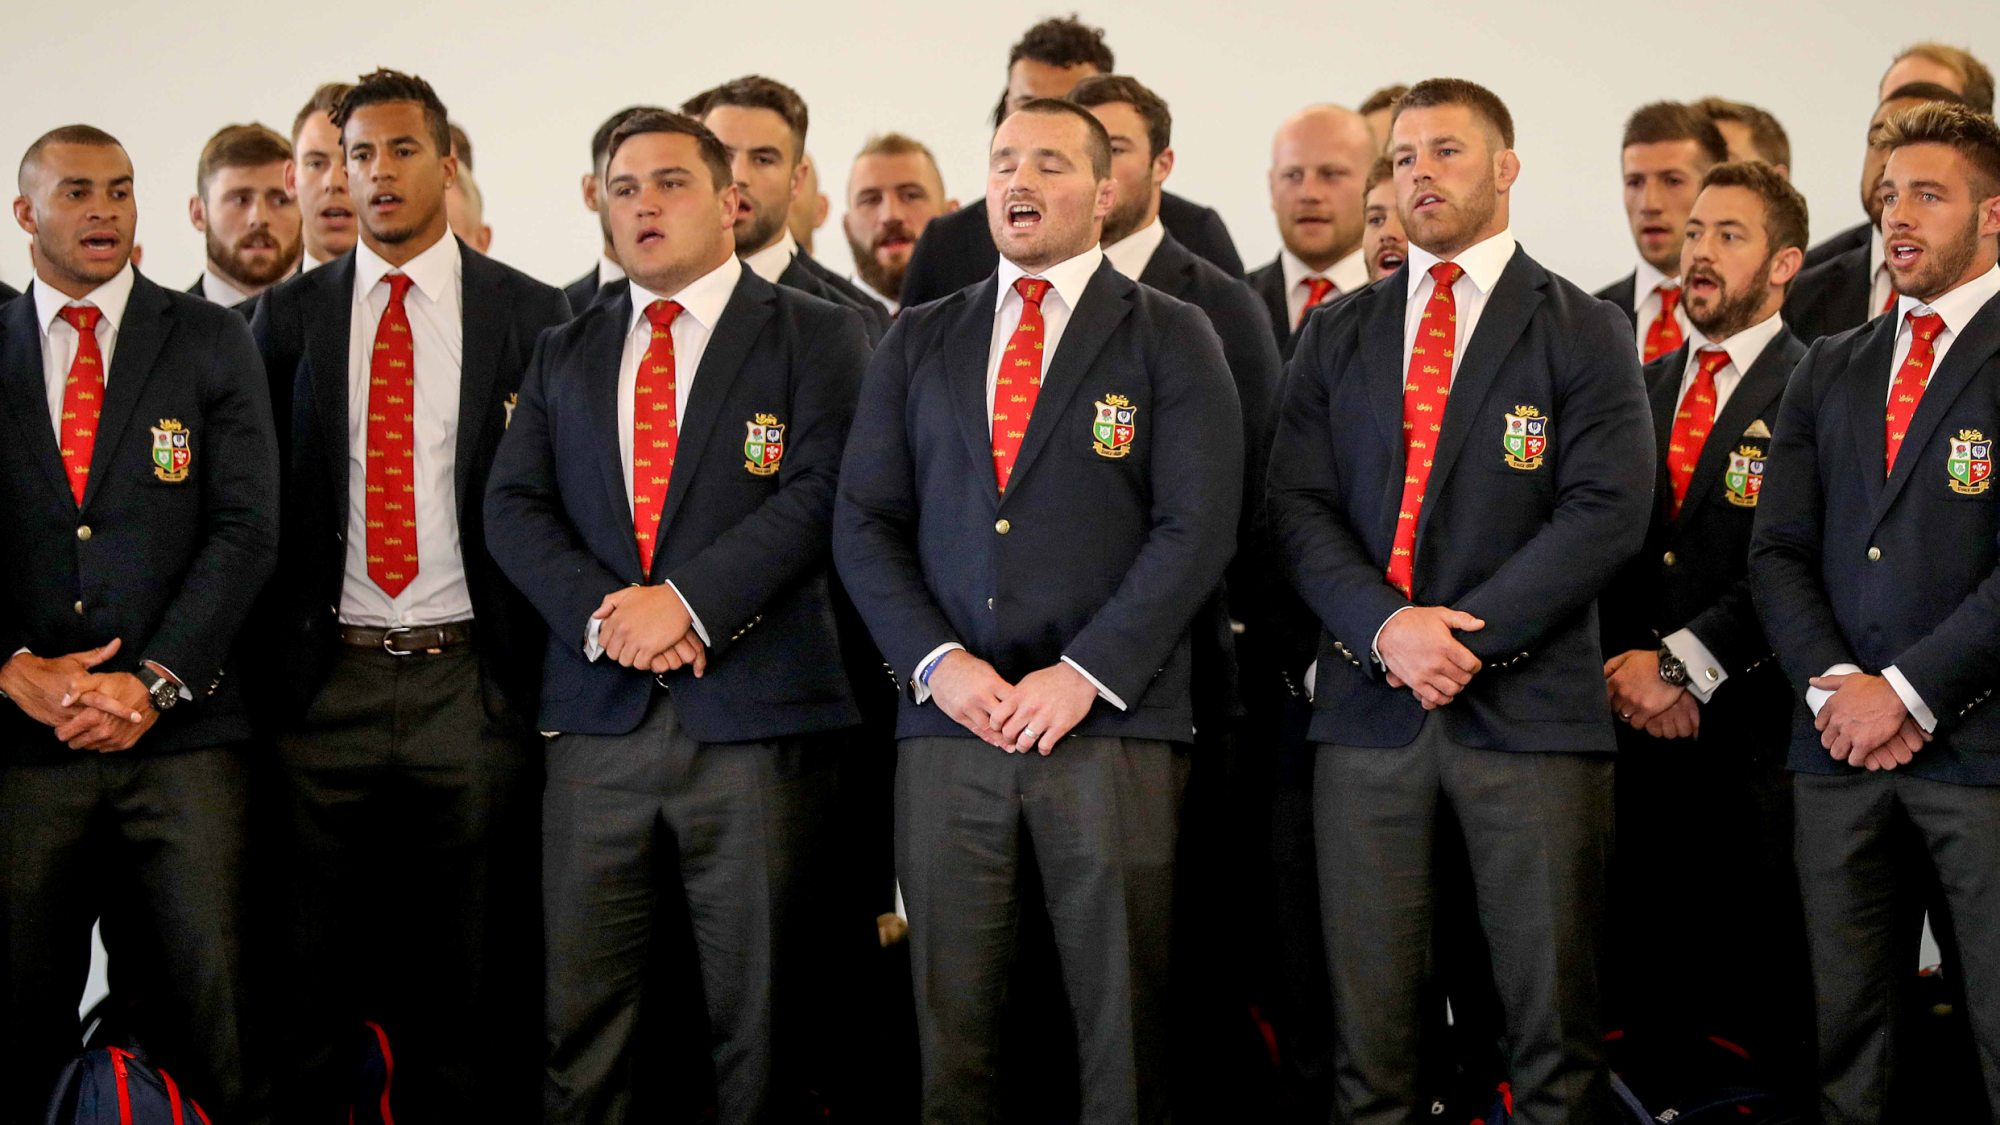 Video: The squad perform Calon Lân on arrival in Auckland